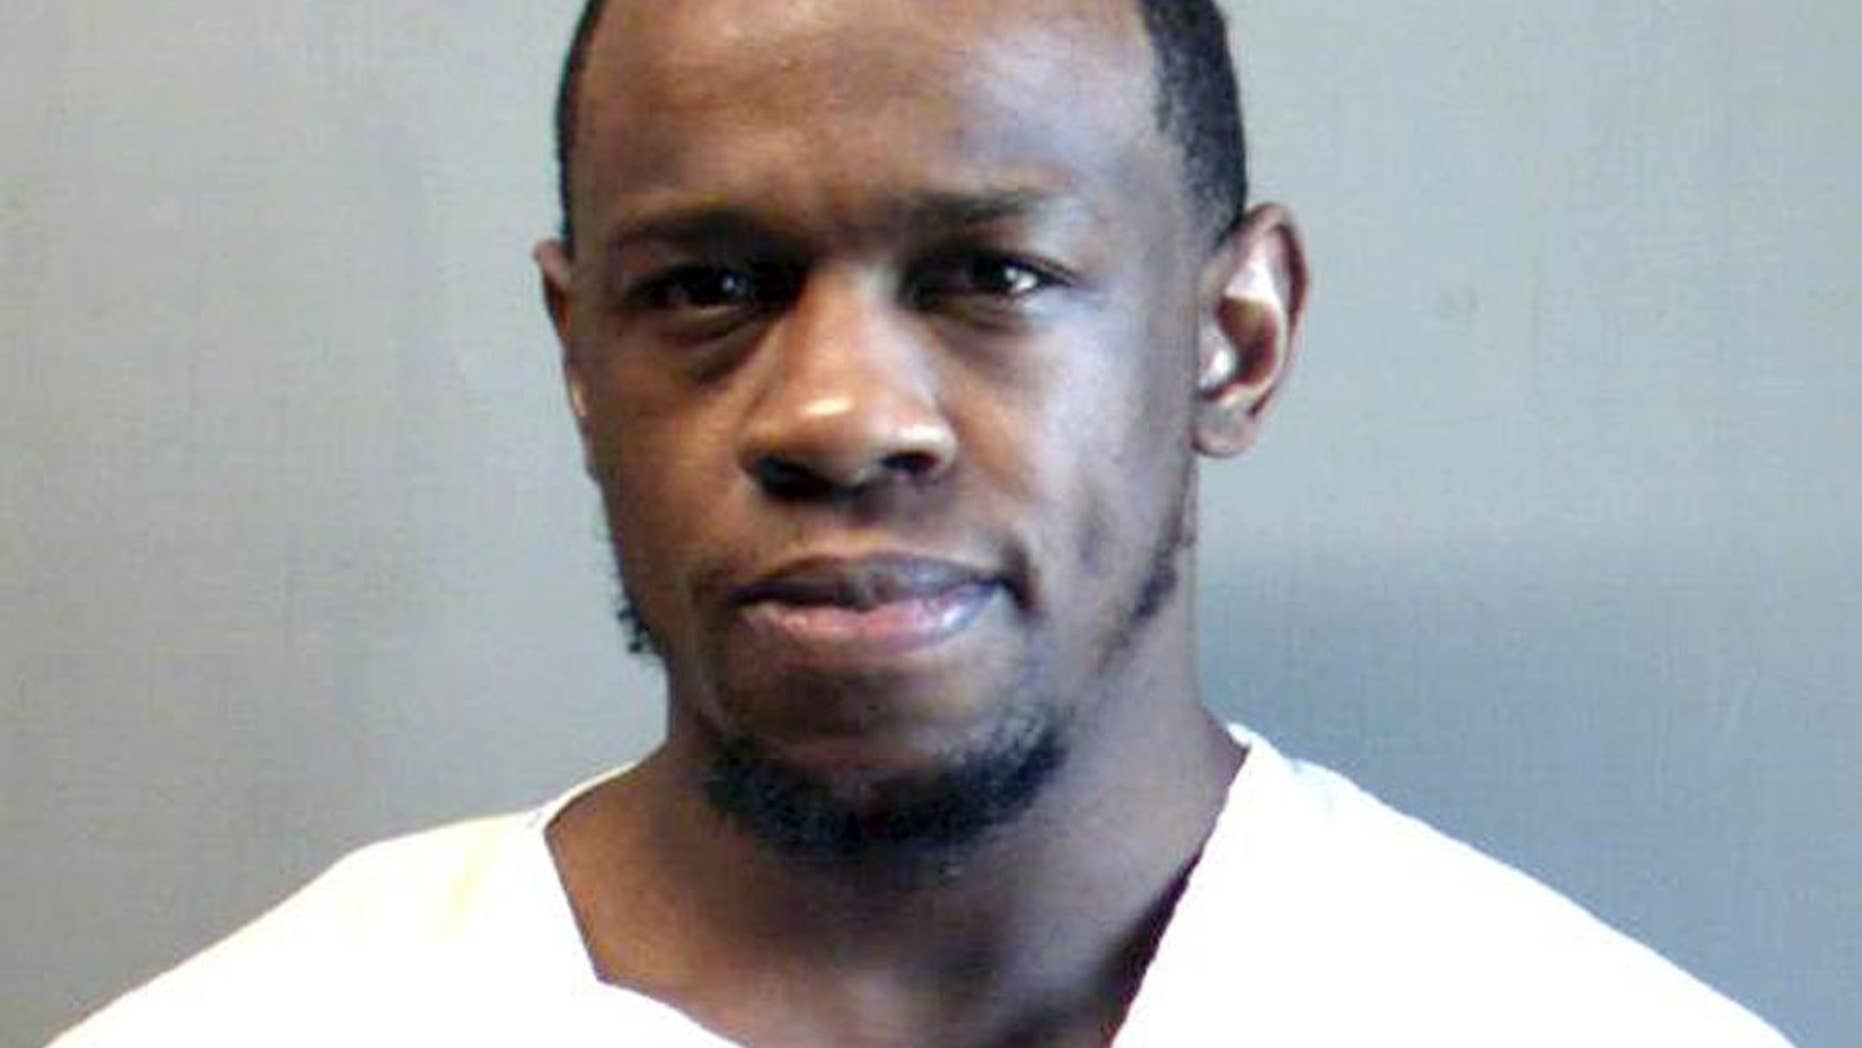 This July 2015 inmate photo released by the Connecticut Department of Correction shows Bobby Johnson, of New Haven, Conn., sentenced to prison in 2006 for the killing of Herbert Fields. Johnson is expected to be freed Friday, Sept. 4, 2015, because prosecutors are now questioning the evidence in the case. (Connecticut Department of Correction via AP)